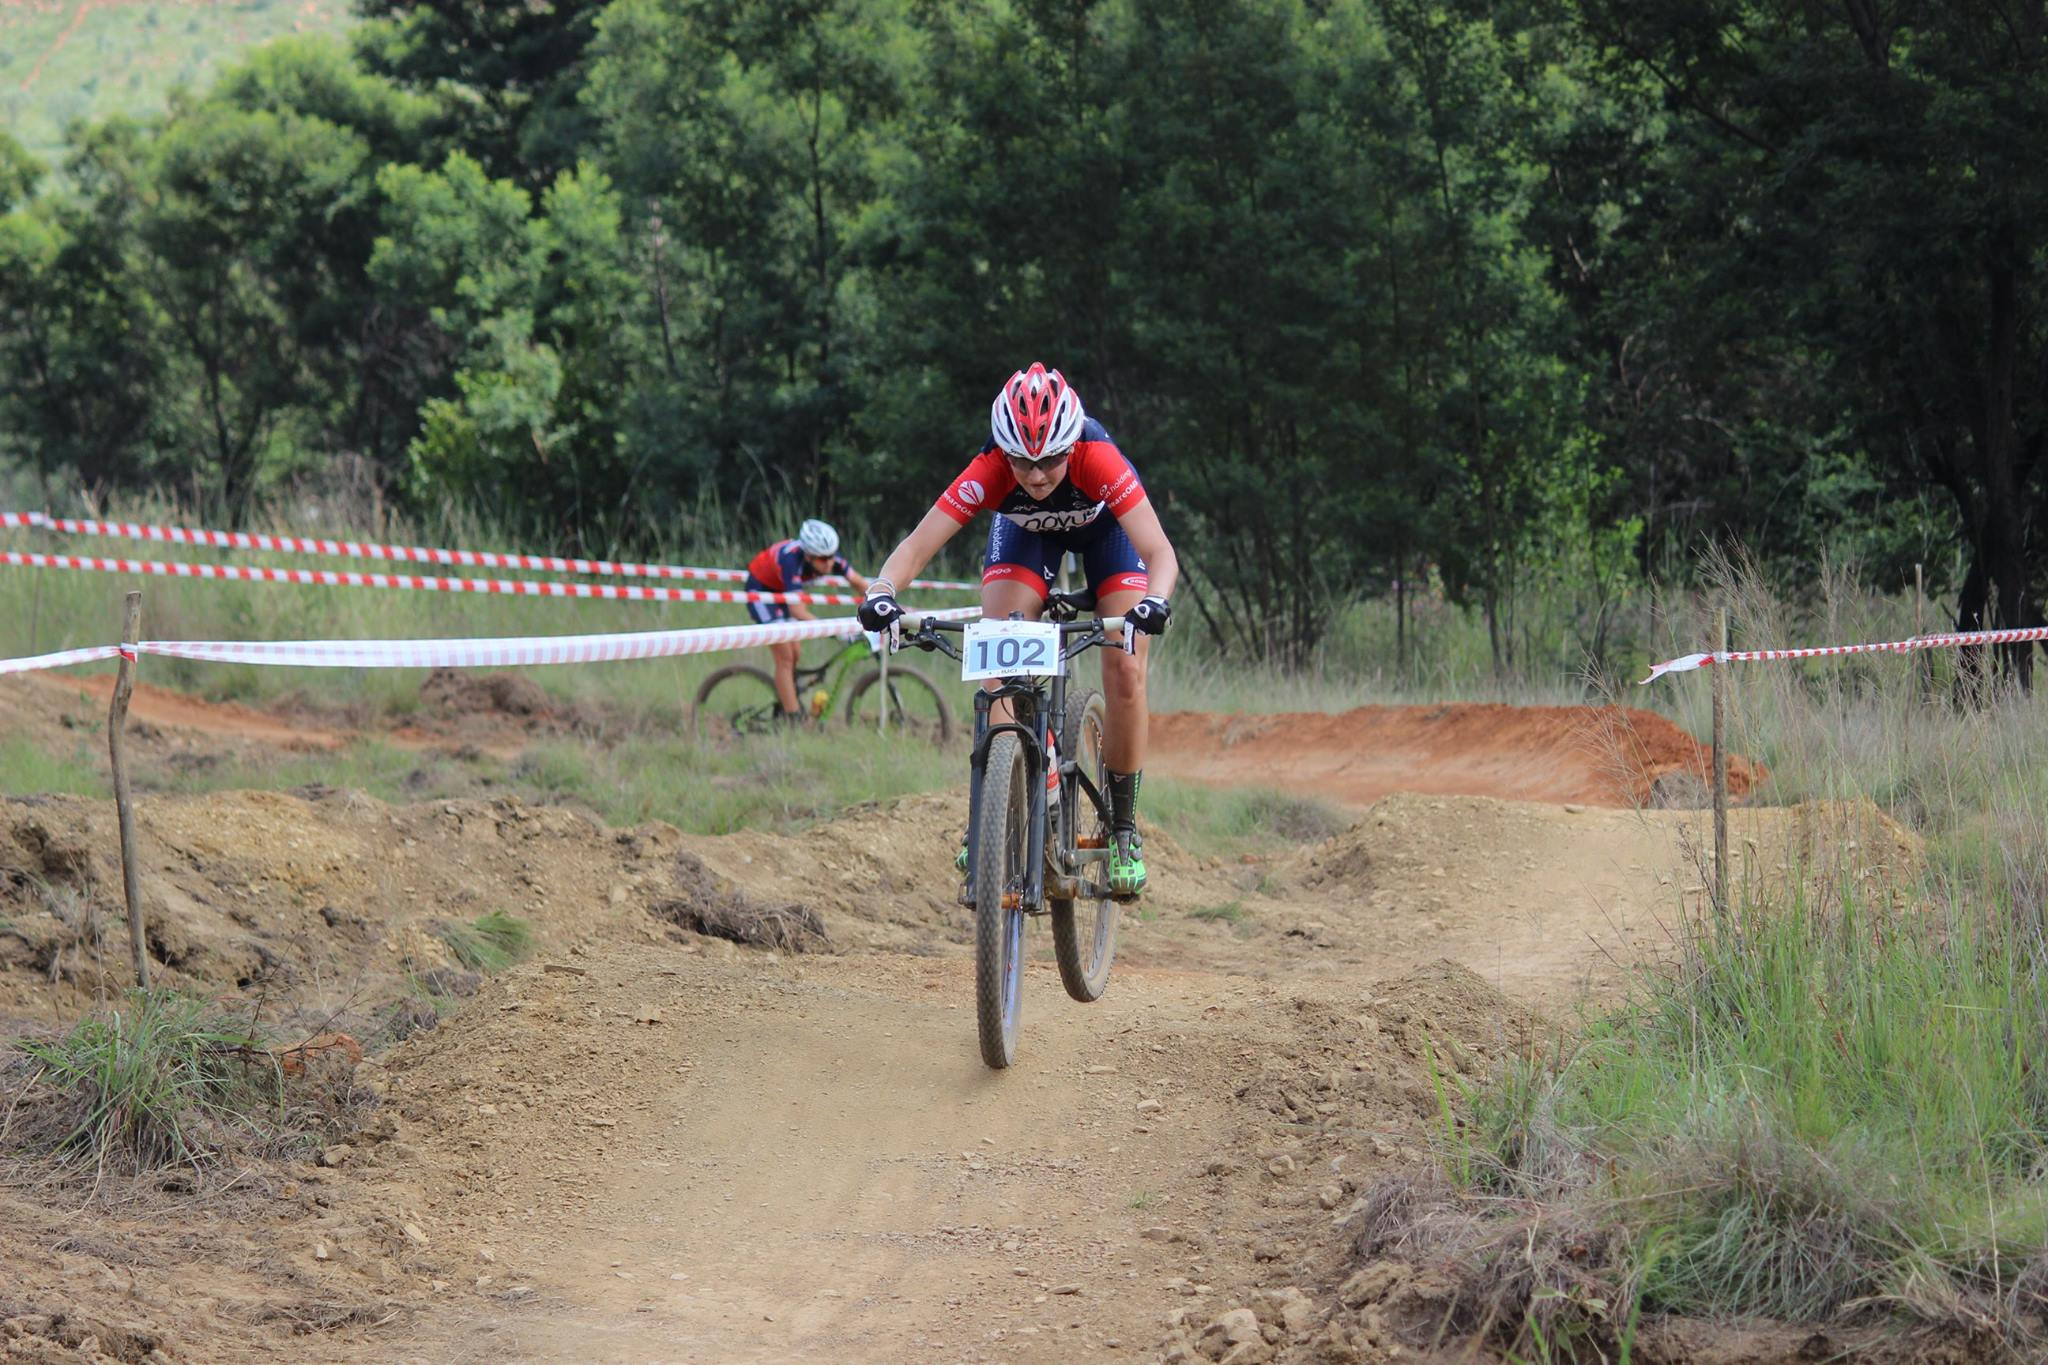 Mariske Strauss (Novus OMX Pro Team) finished in second place in the Pro-Elite Women's race at round three of the Stihl 2016 SA XCO Cup Series hosted by the City of Thswane at Wolwespruit Bike Park in Erasmuskloof, Pretoria, on Saturday 26 March. Photo credit: Alcock's Quick Snaps